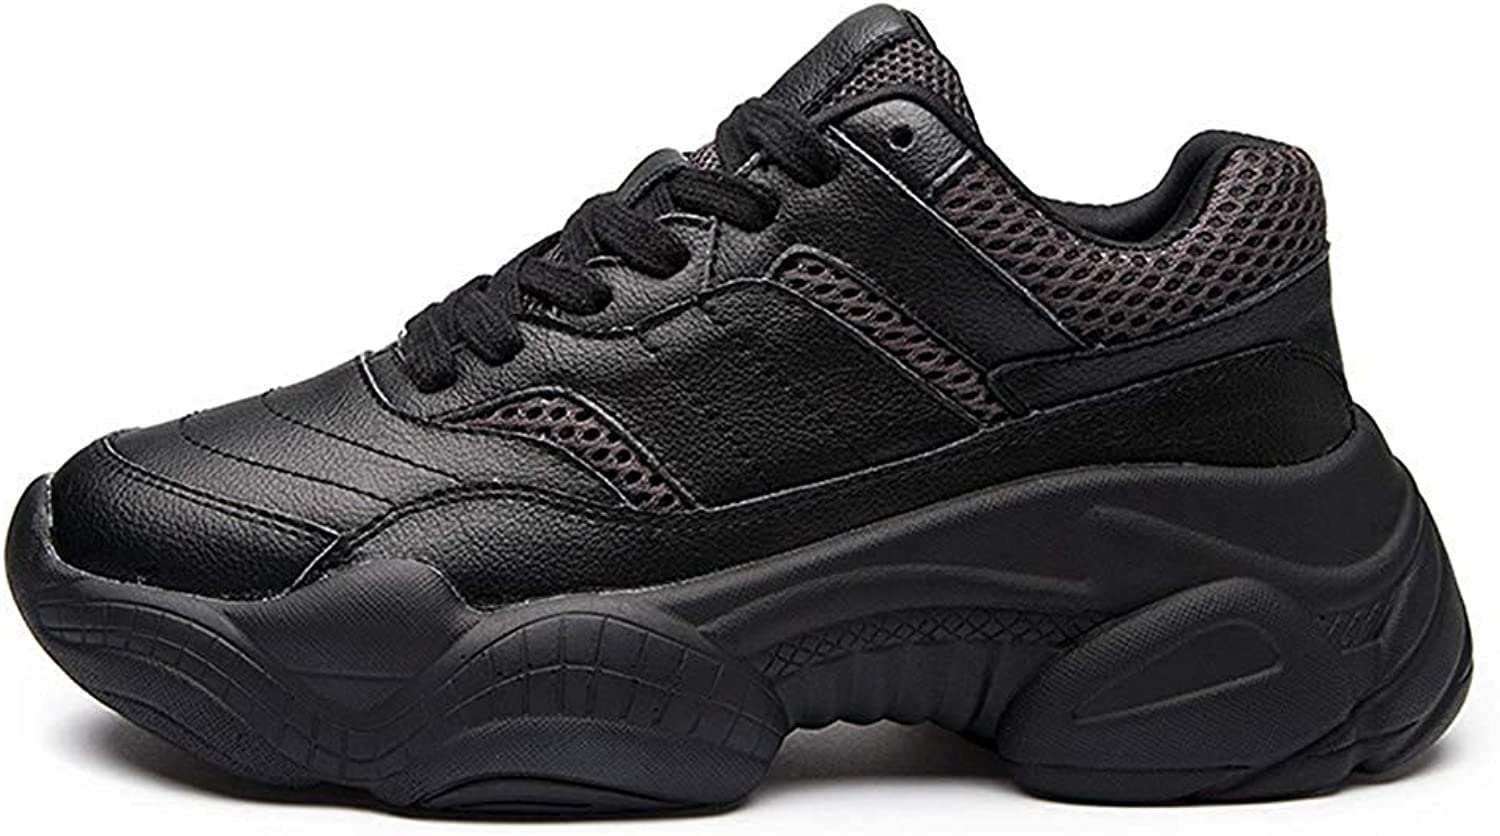 Women's Comfort Breathable Mesh Thick Sole Sports Dad shoes Lace Up Flat Platform Chunky Sneakers